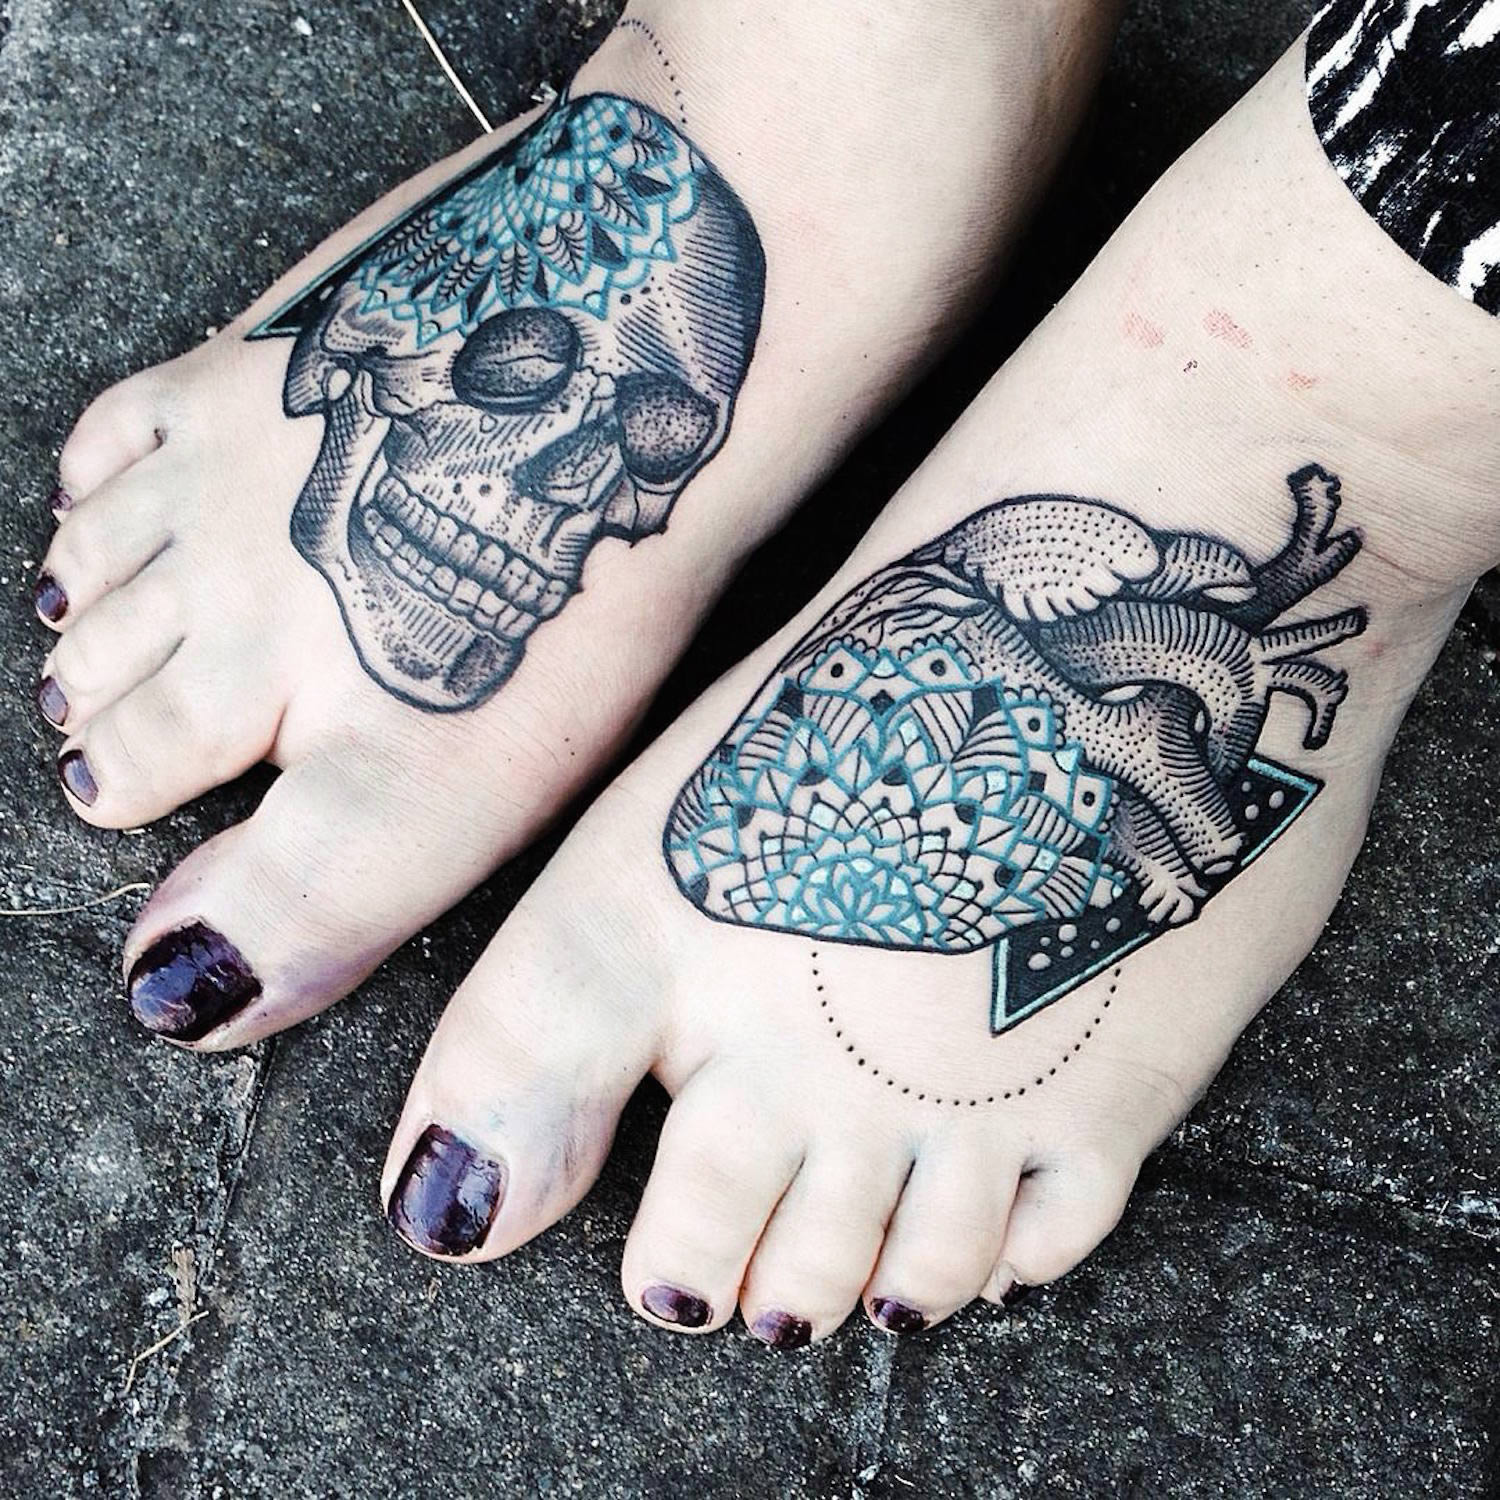 skull and heart tattoos on either foot